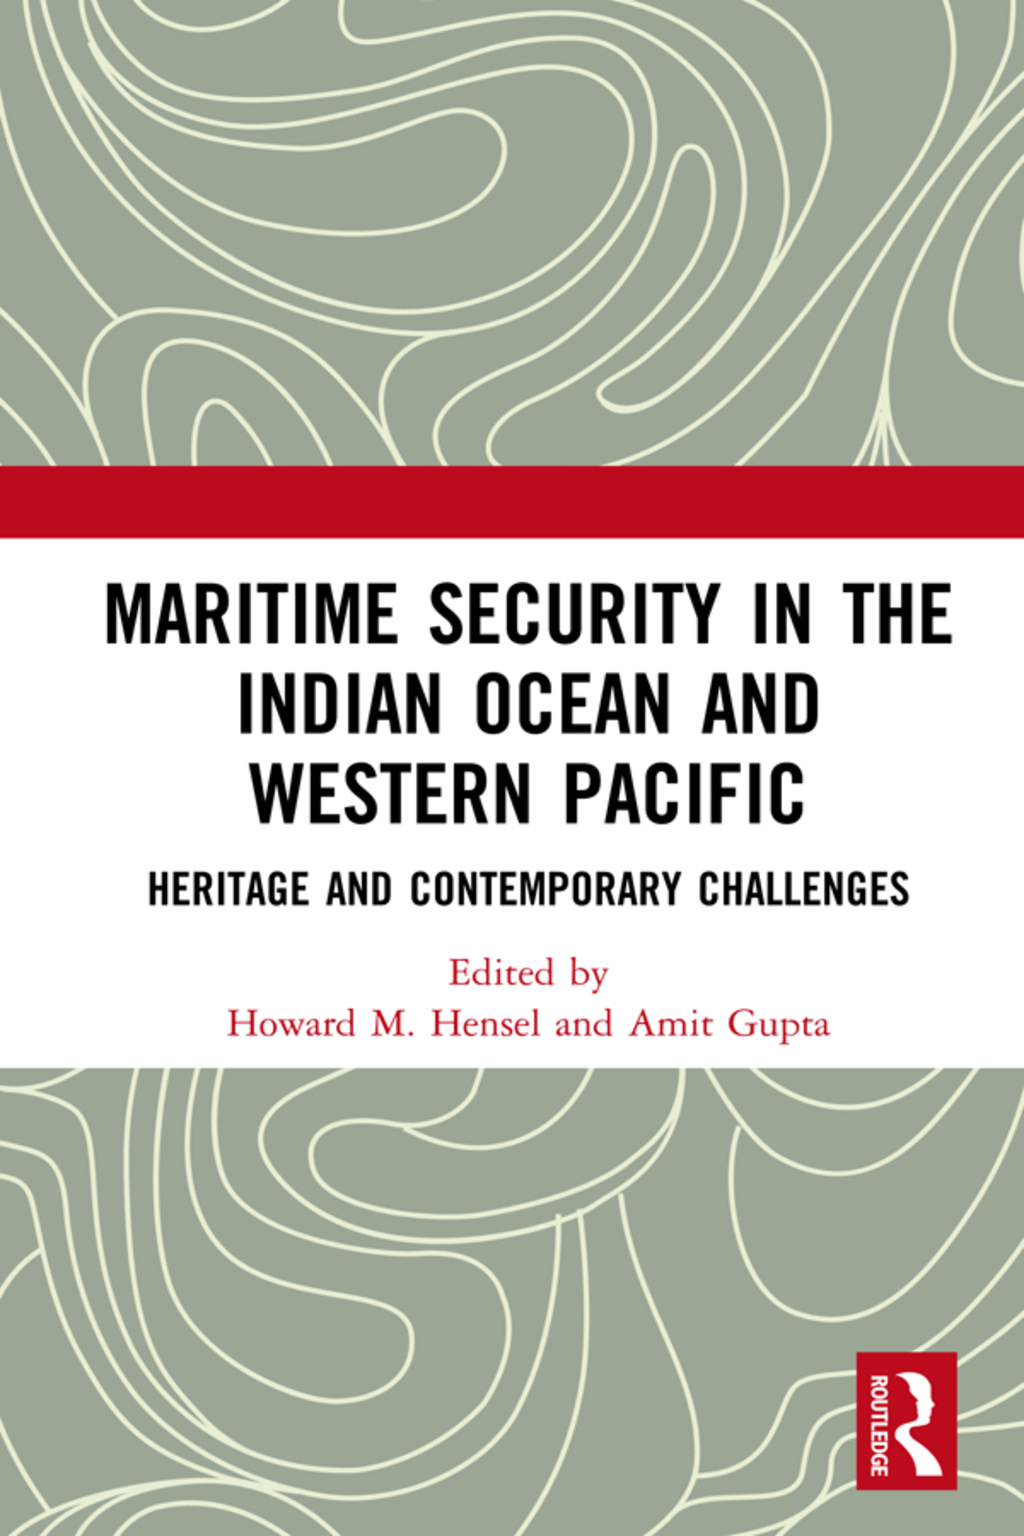 Maritime Security in the Indian Ocean and Western Pacific (eBook Rental)